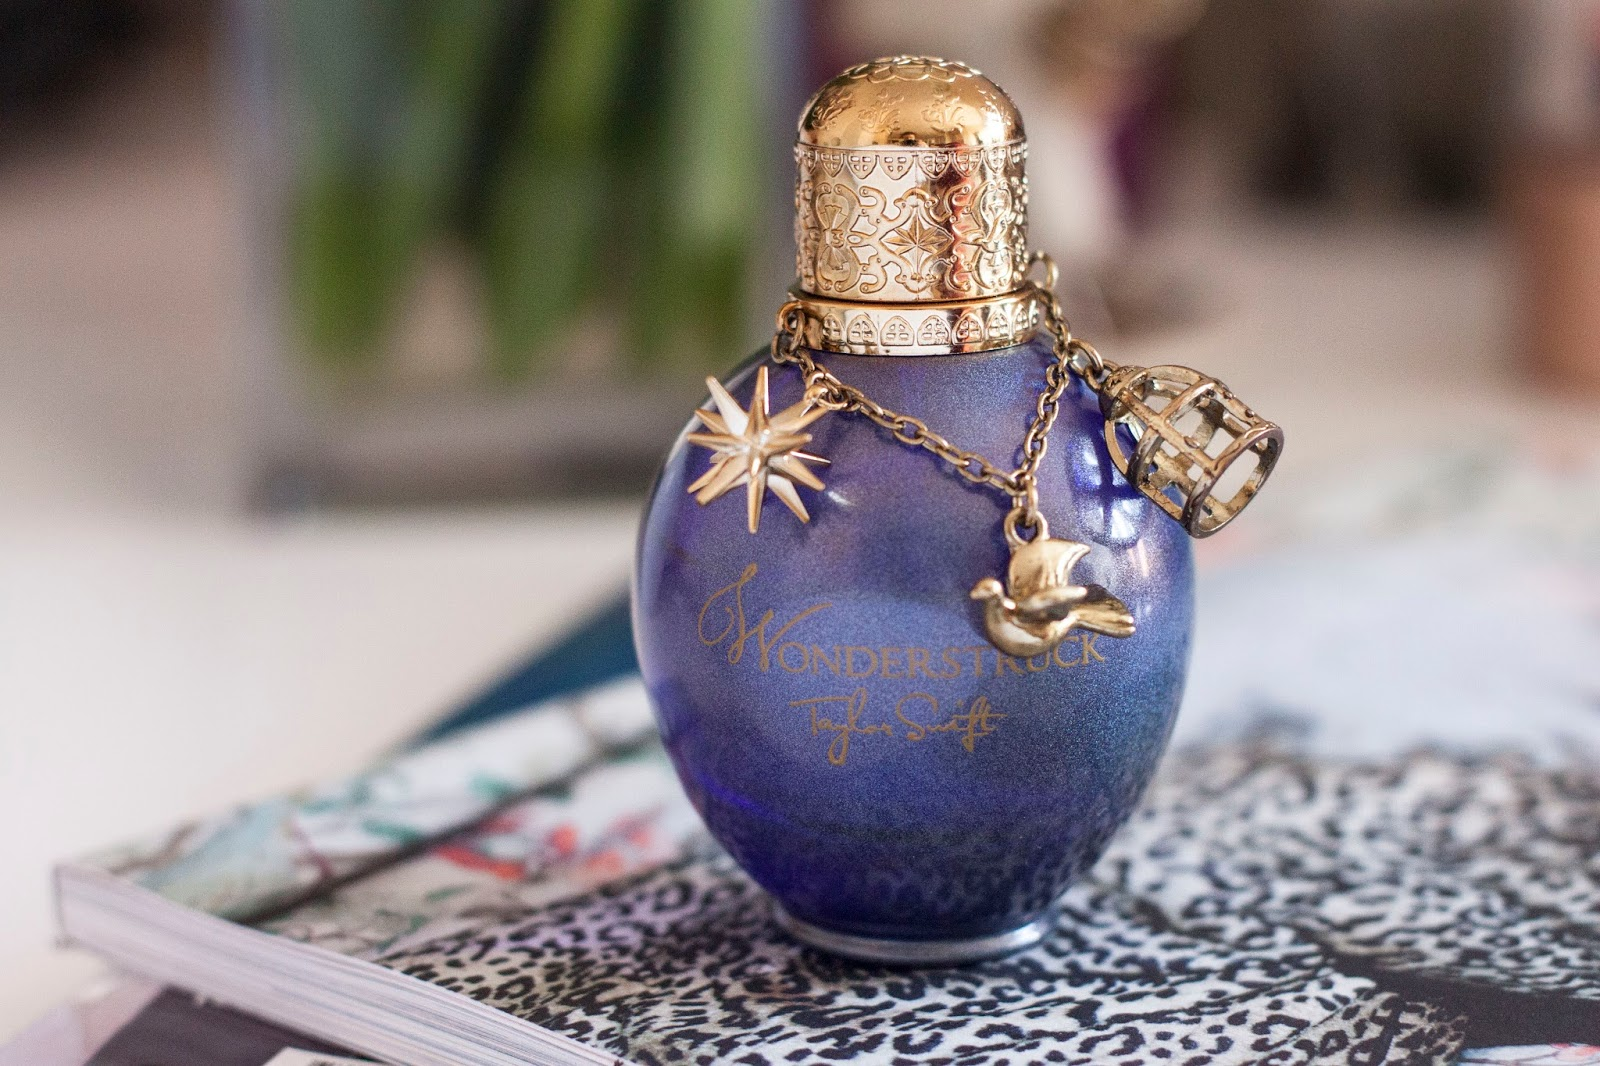 Image of Wonderstruck perfume by Taylor Swift